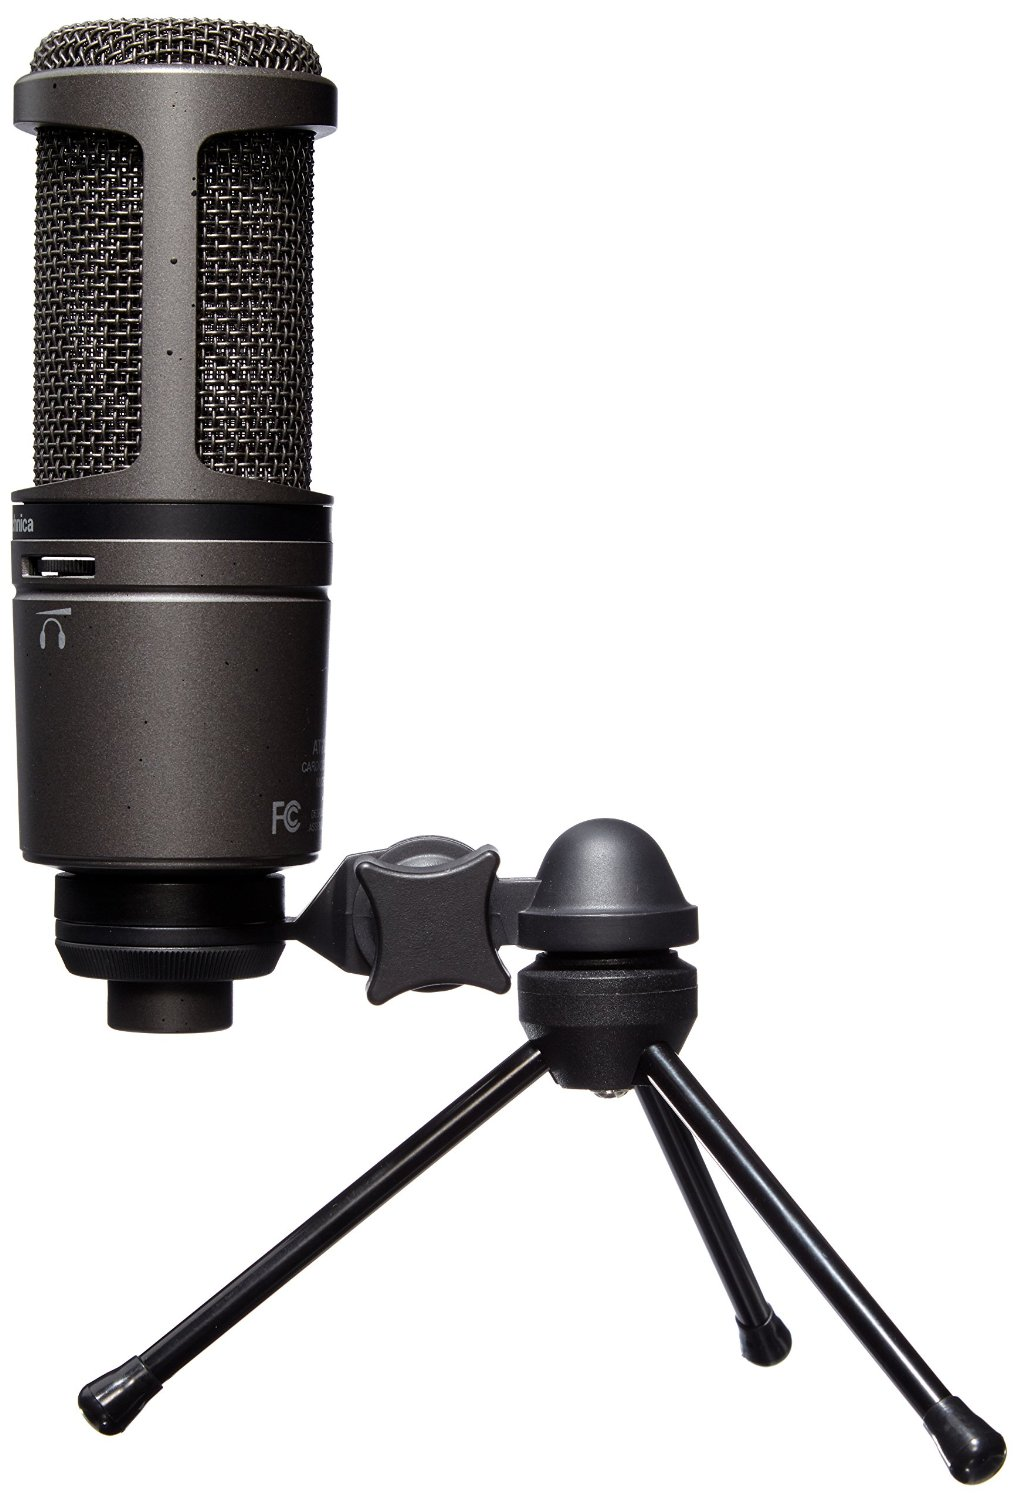 [W.I.P] AT-2020 Condenser Microphone